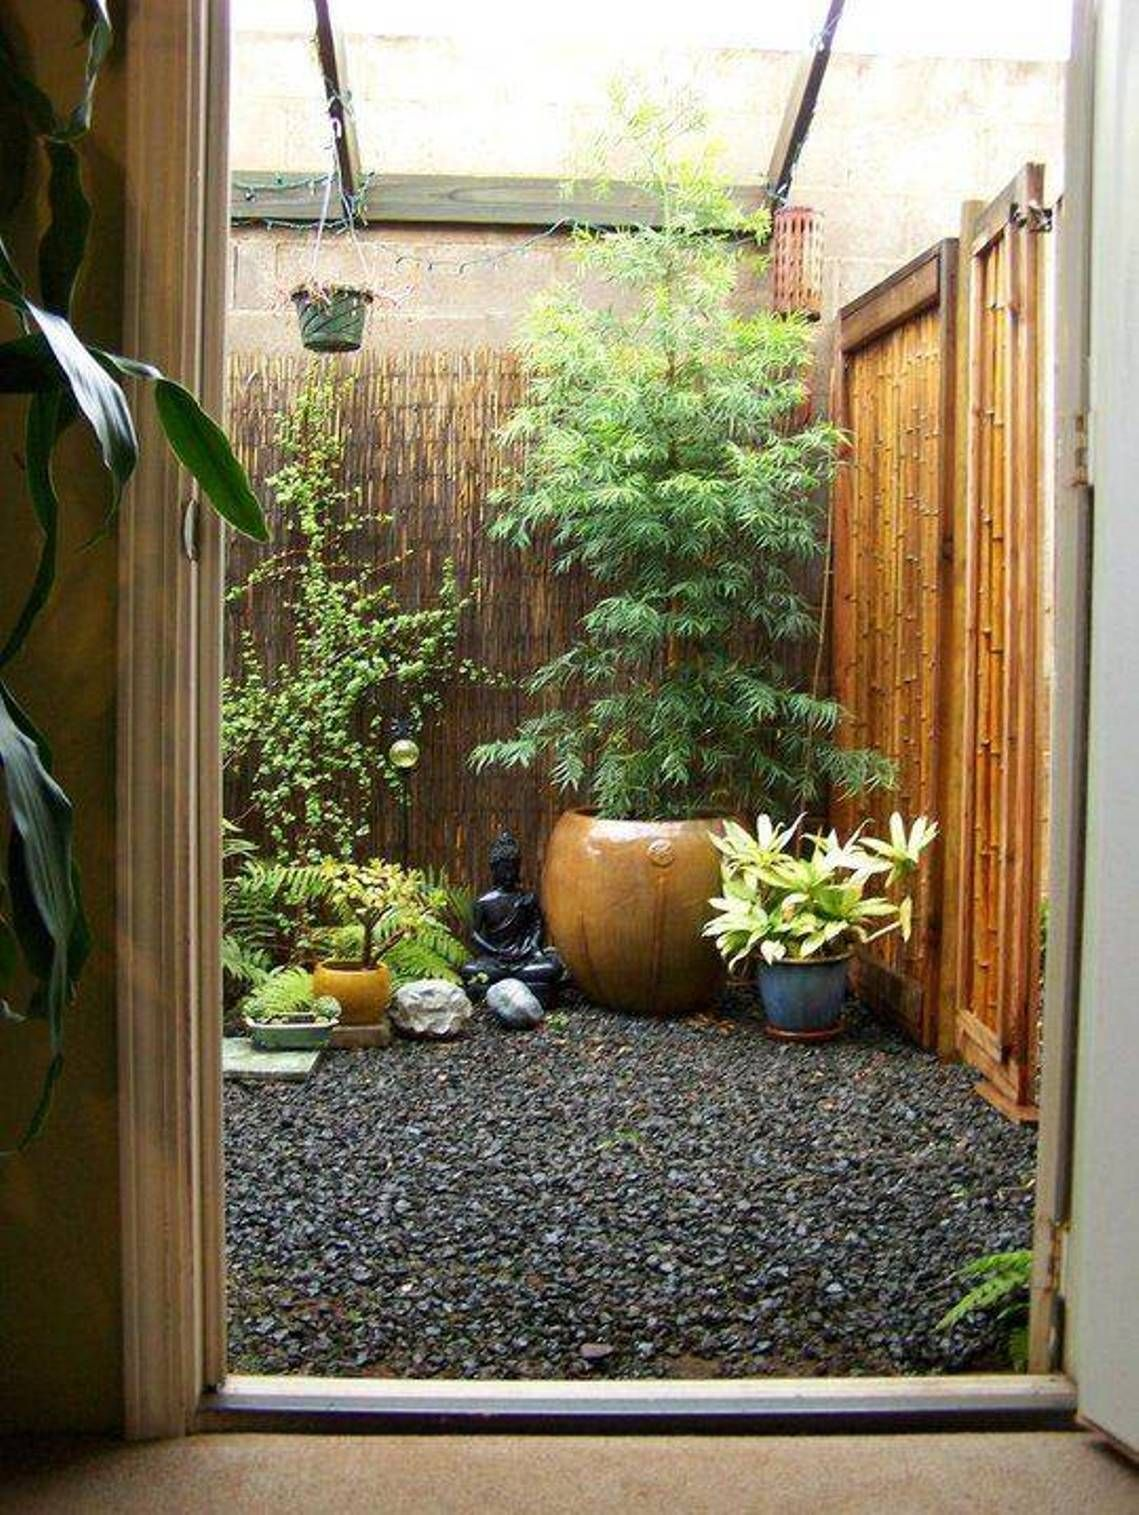 Landscaping And Outdoor Building , Small Patio Decorating Ideas : Small Patio  Decorating Ideas With Japanese